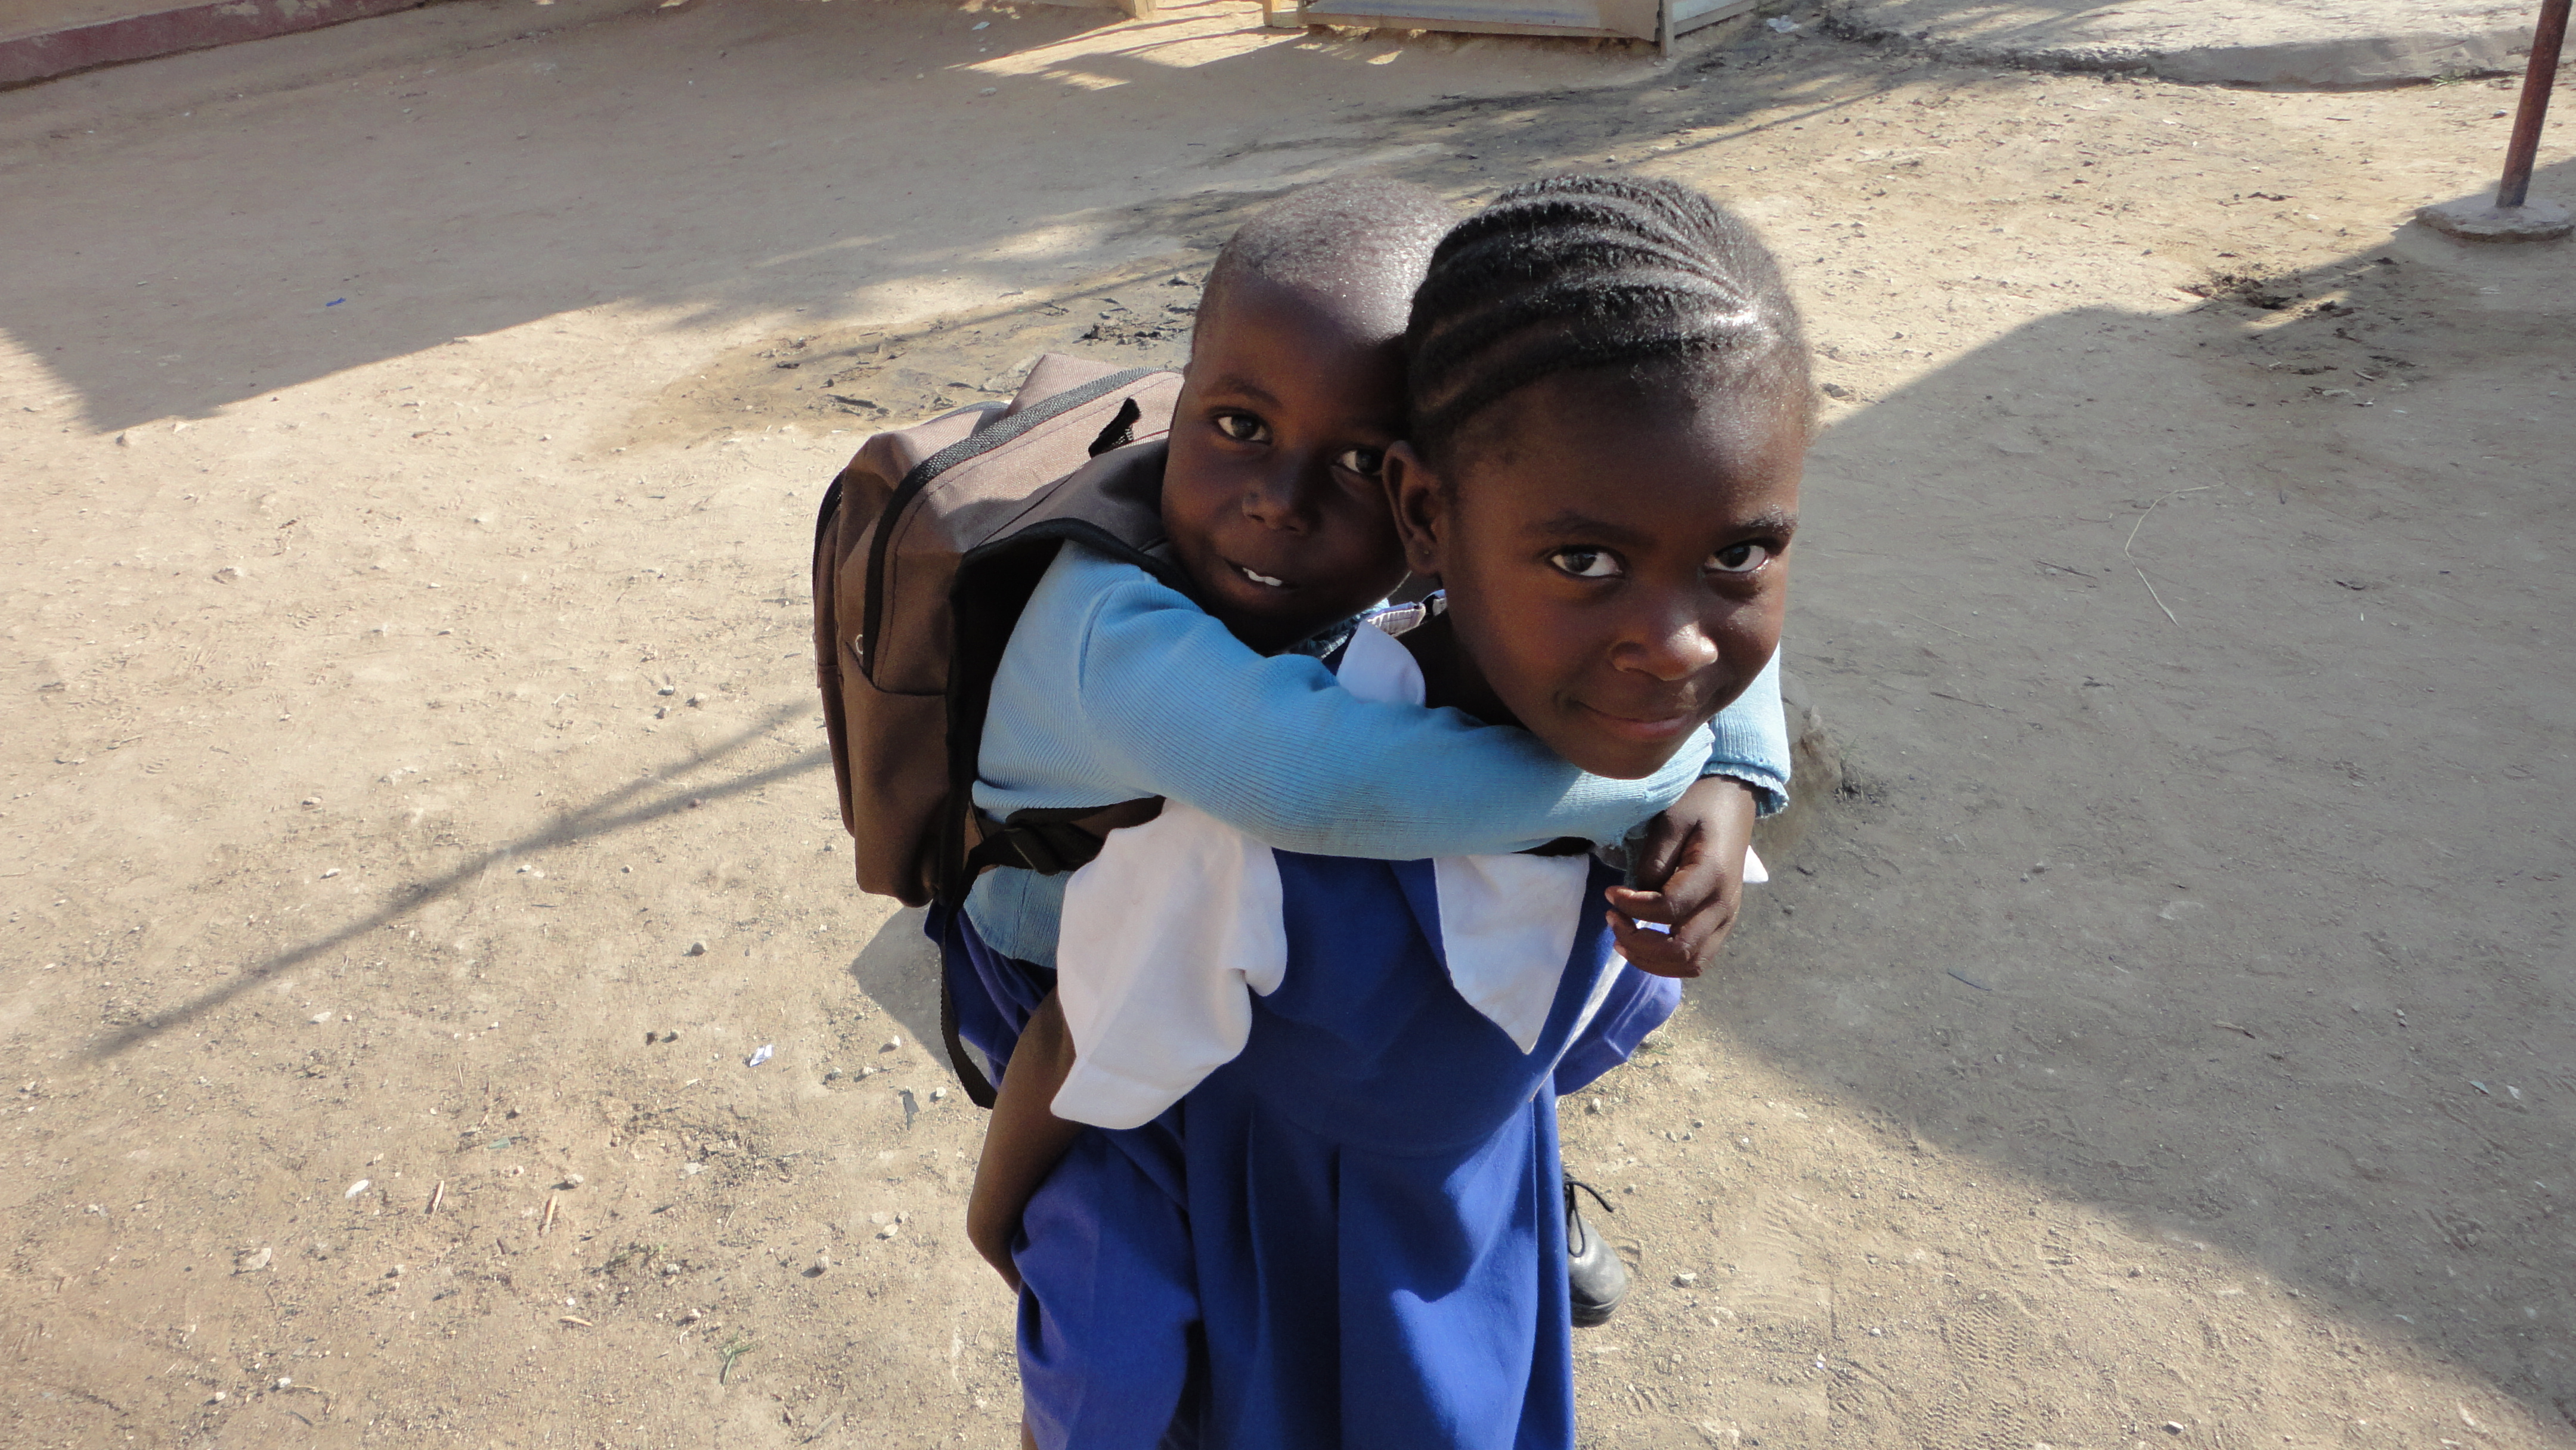 education enables the poor to escape poverty - a core set of public policies can enable chronically poor people to escape poverty these are social protection, education and healthcare specifically for the hard to reach asset.